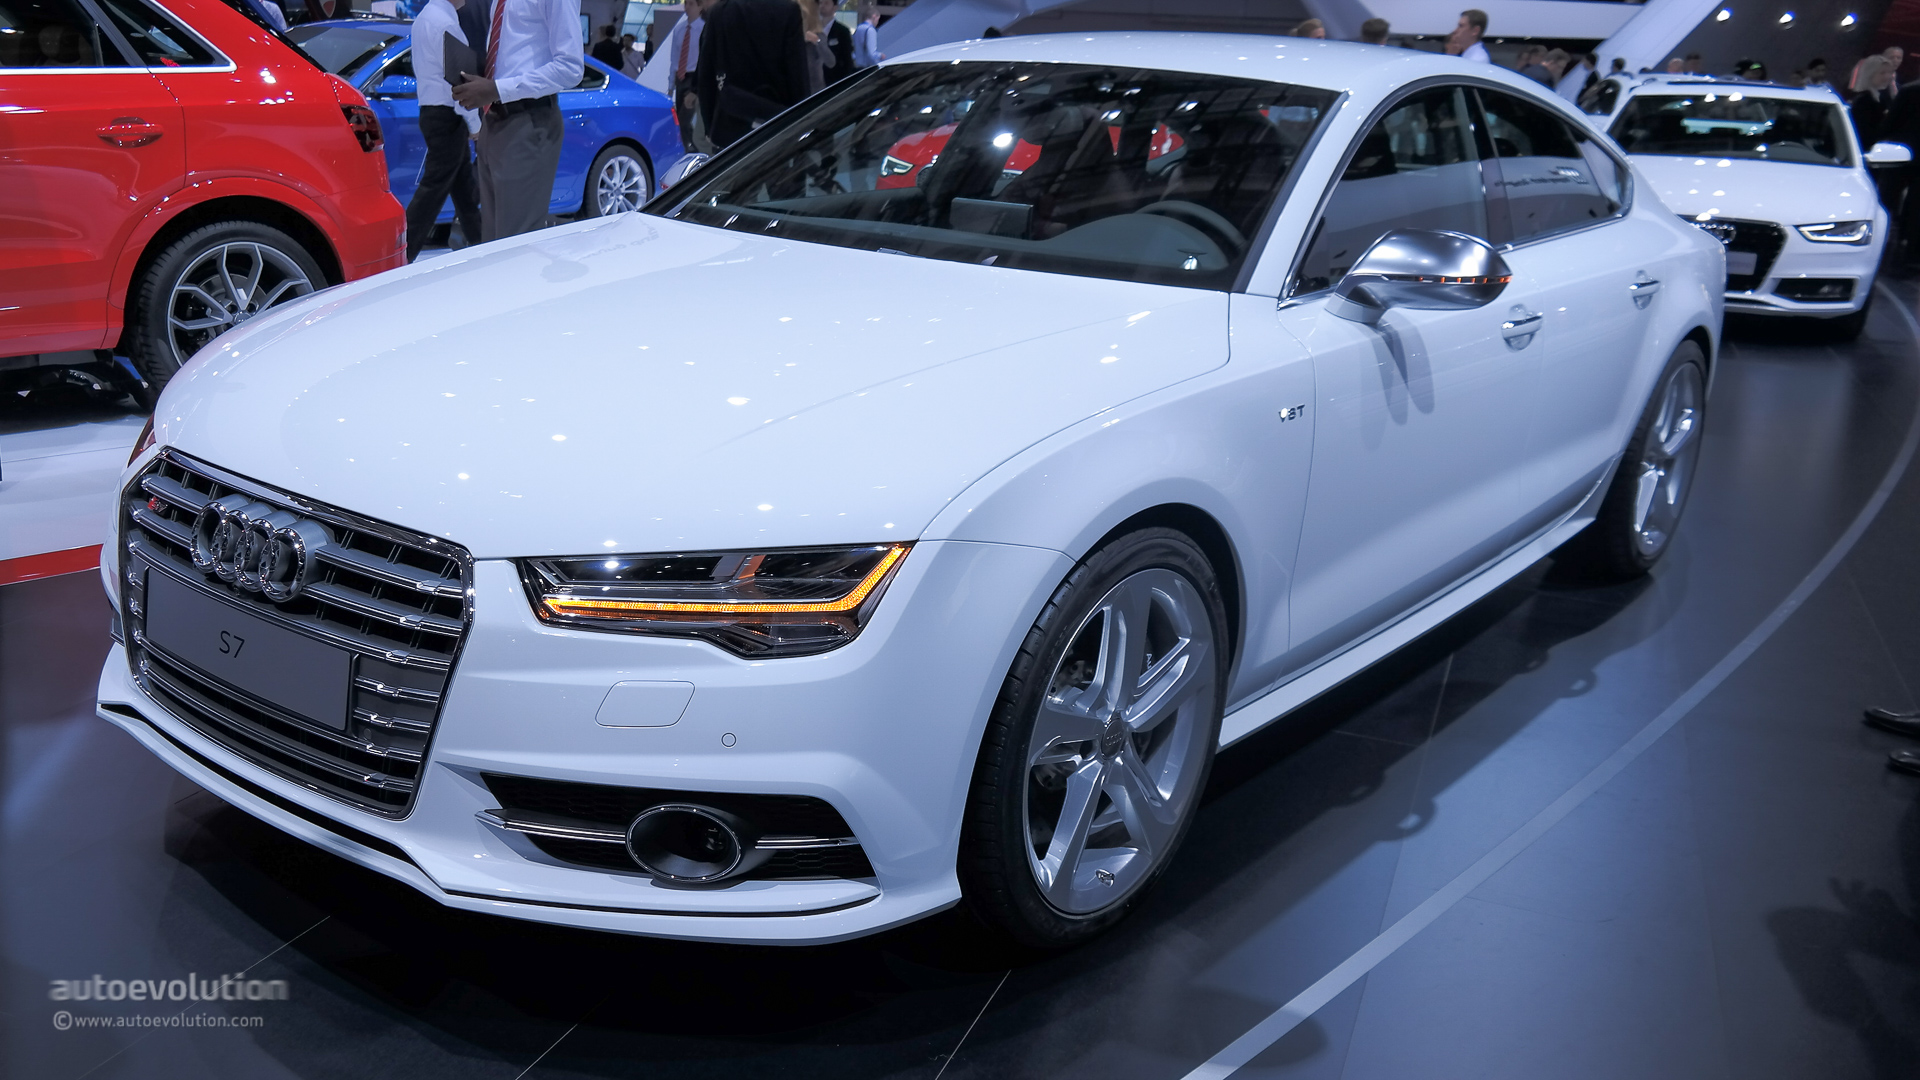 2015 Audi Q5 >> 2015 Audi S7 Facelift Bows at Paris for the First Time [Live Photos] - autoevolution